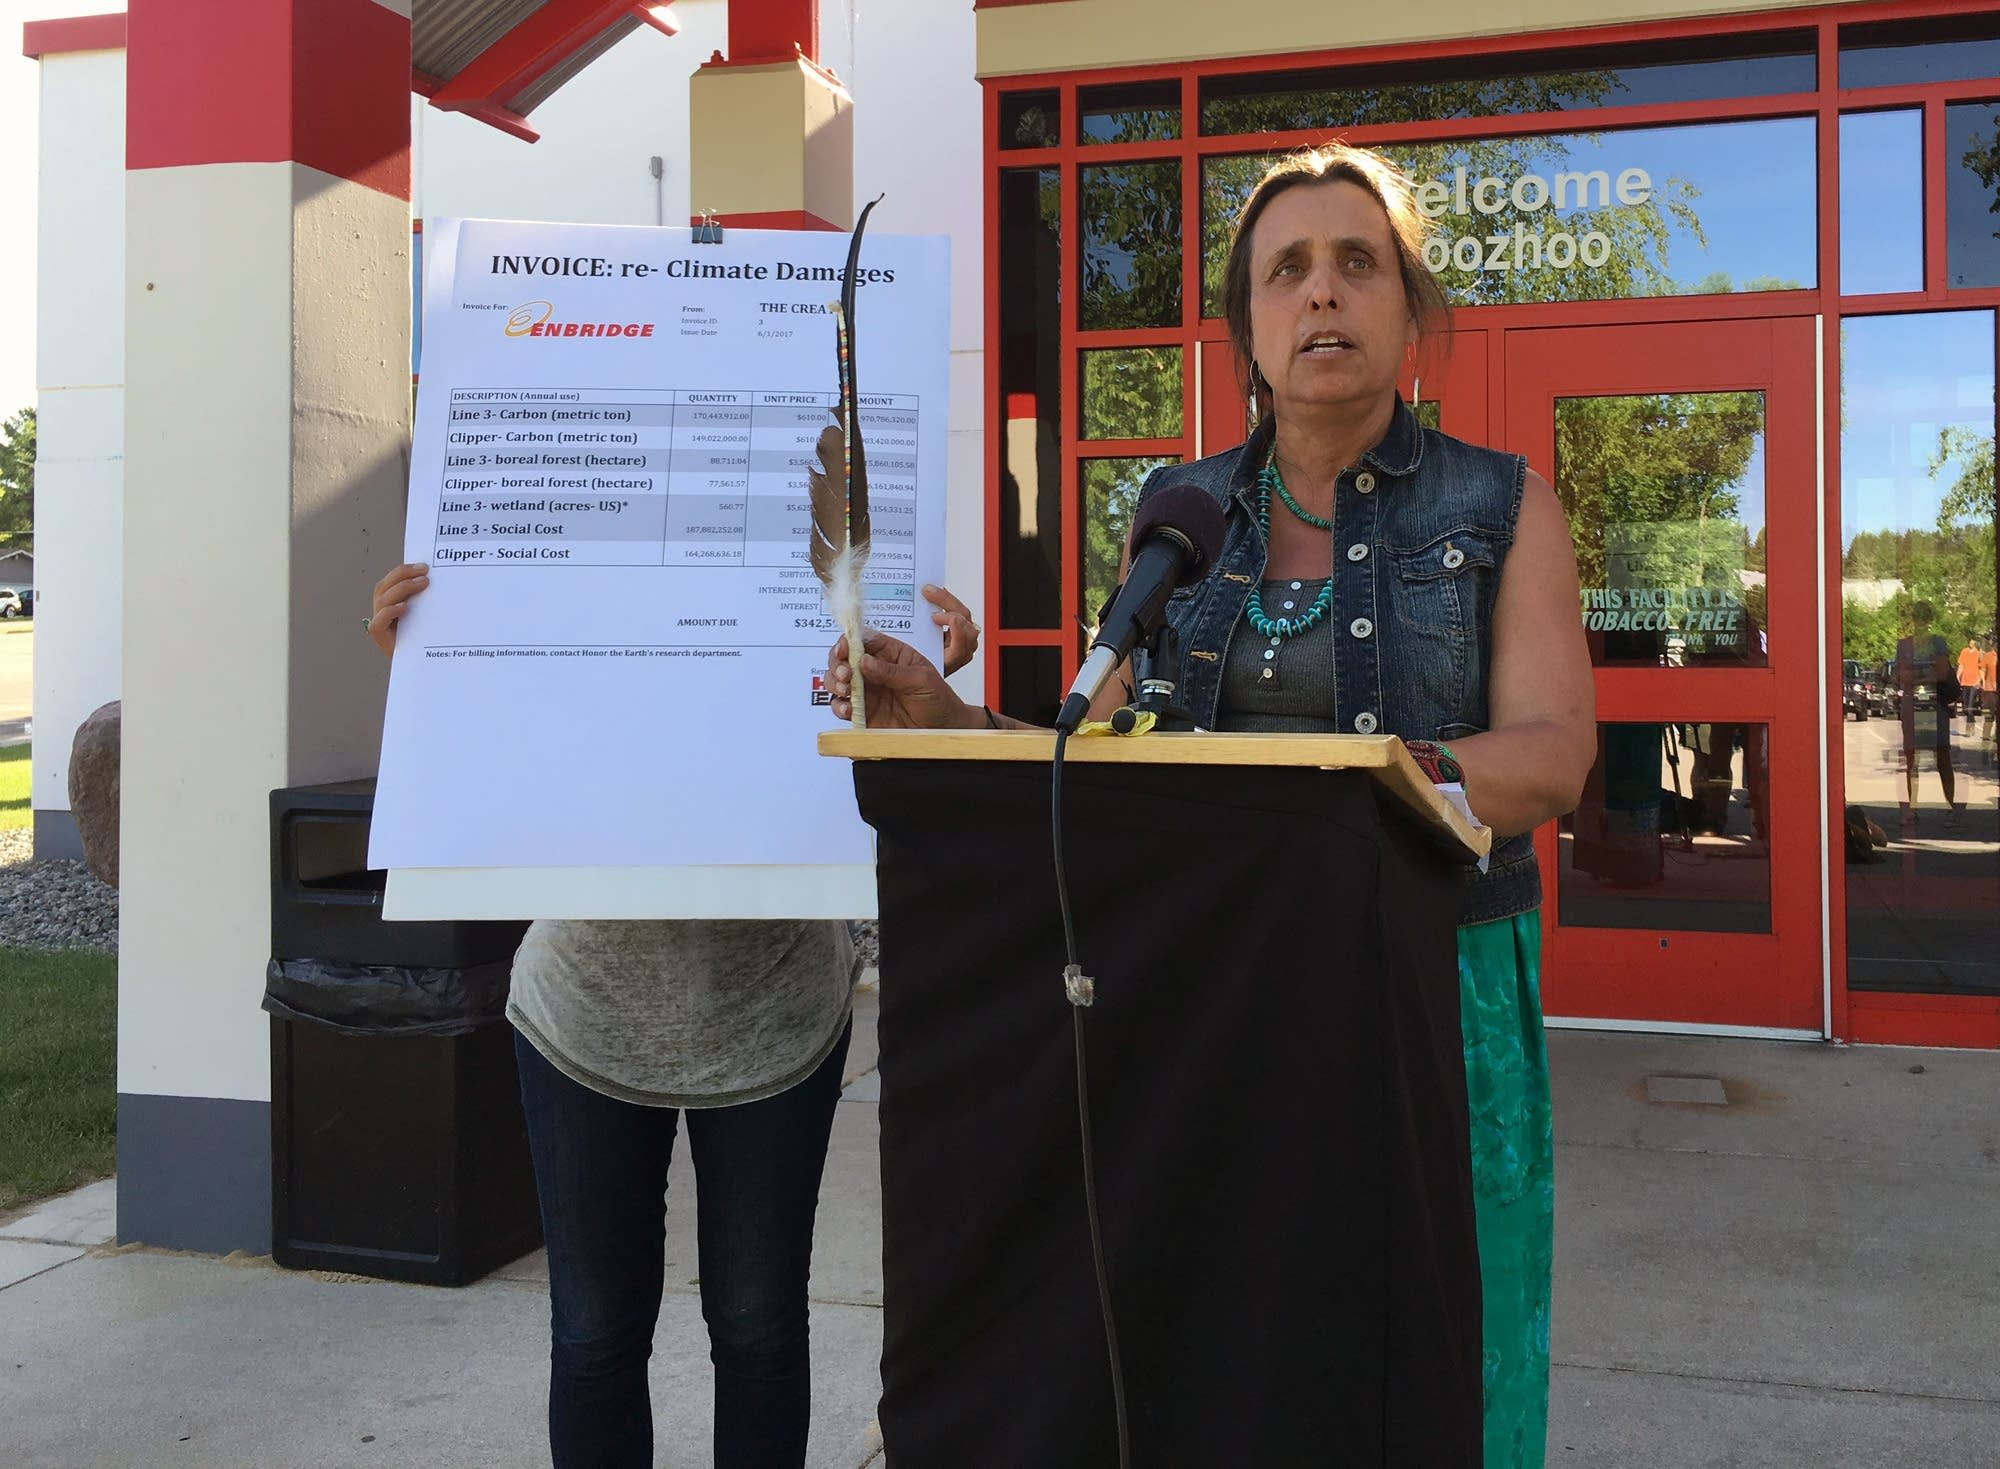 Winona LaDuke speaks at a news conference.